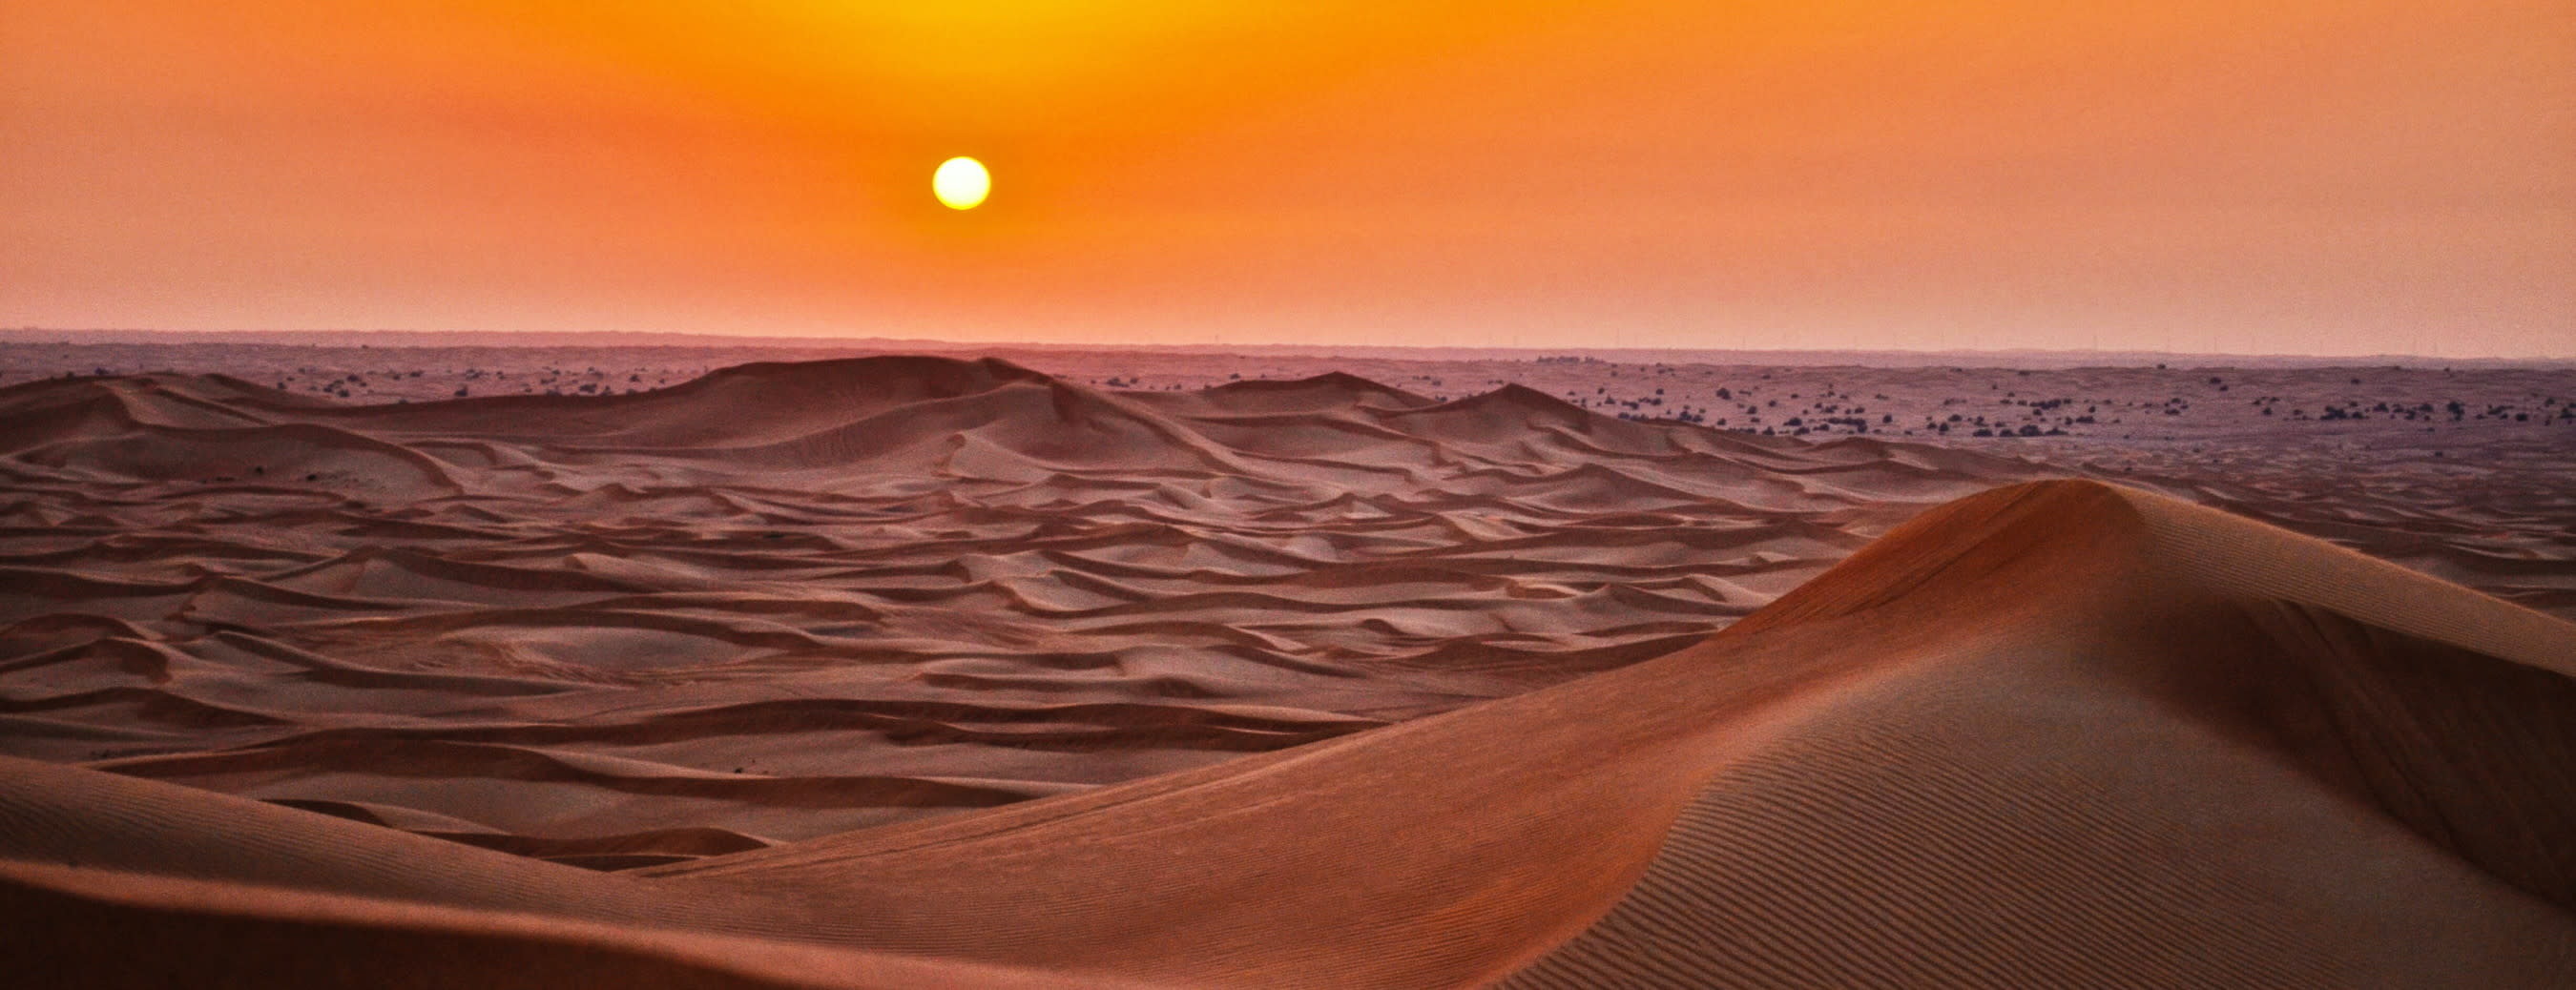 Sand dunes in a desert representing the heat of the markets